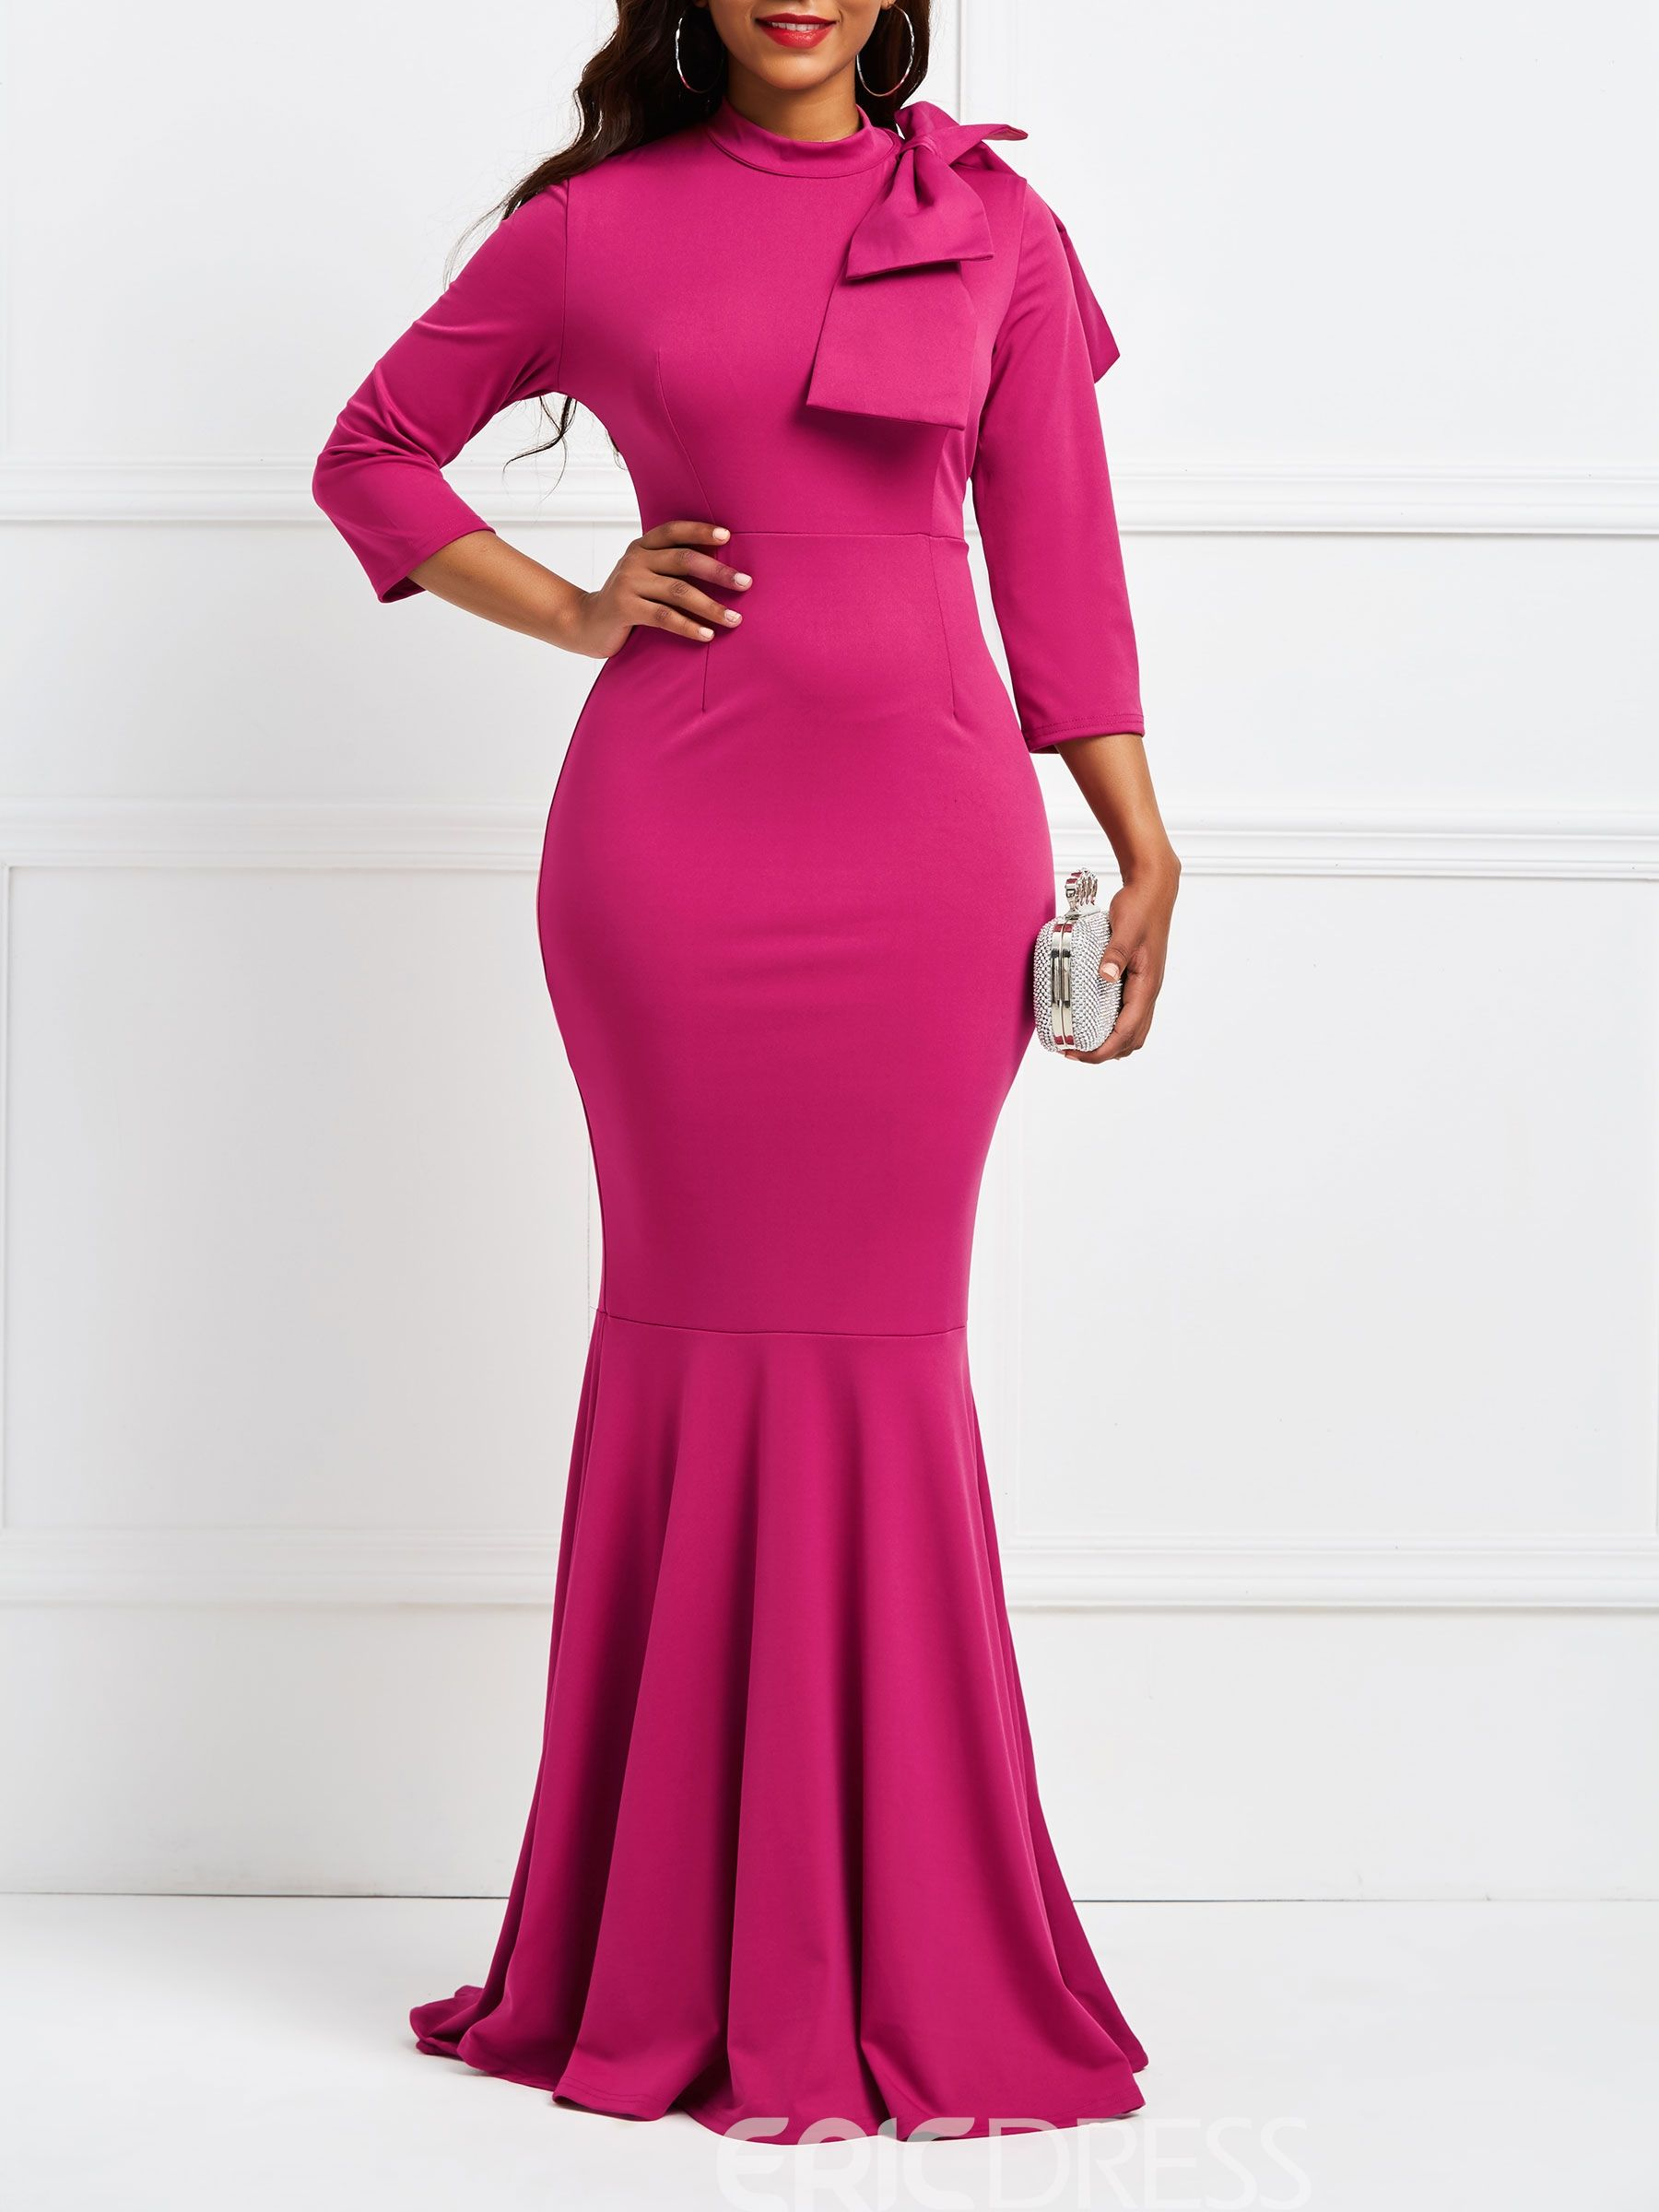 449f557016 Ericdress Purple 3/4 Sleeve Bow Bodycon Maxi Dress | All Dressed Up ...